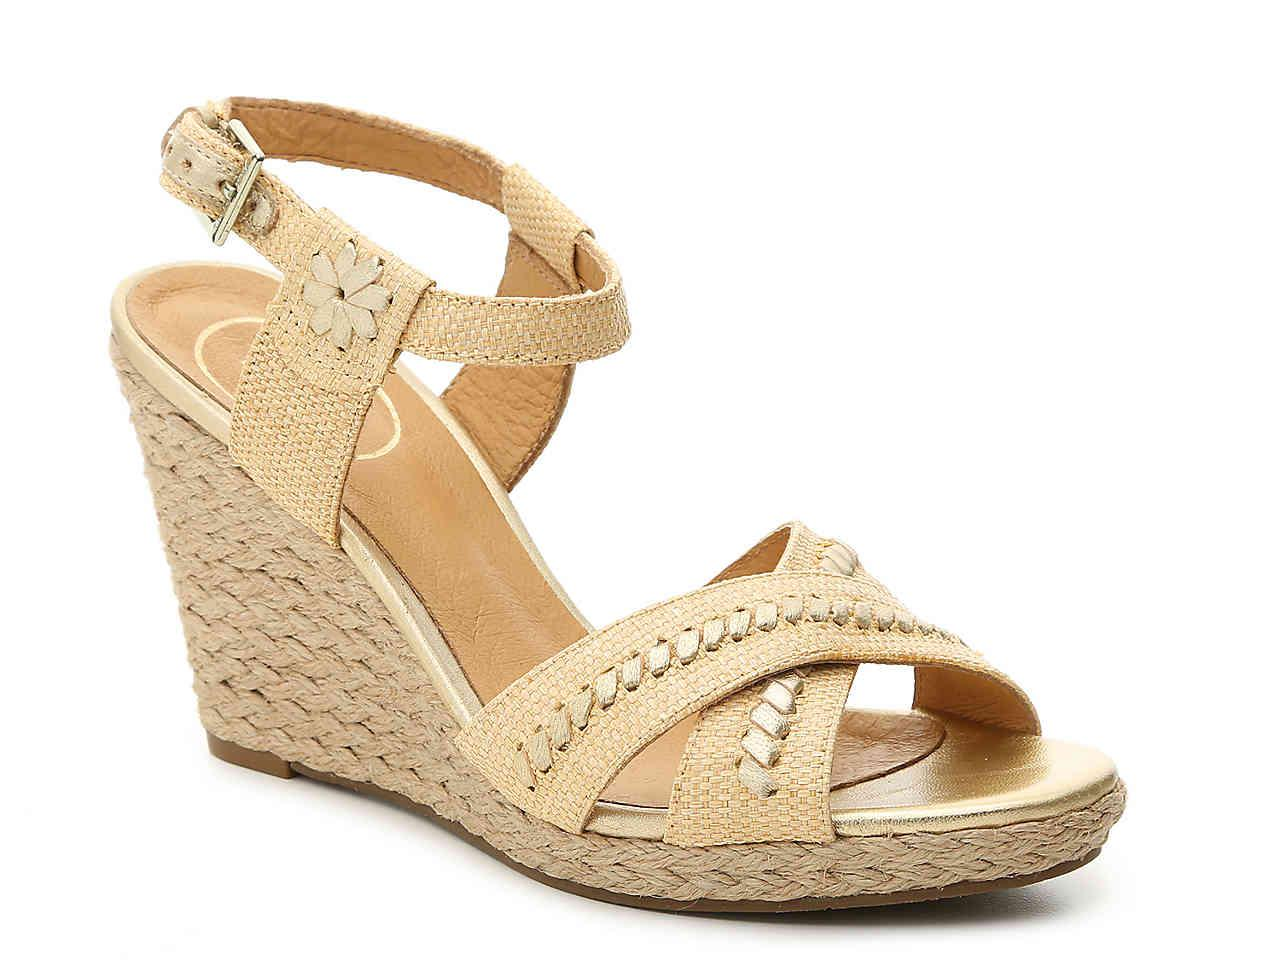 Jack Rogers Luccia Metallic Leather Whipstitched Medallion Wedge Sandals HwncYA3fx